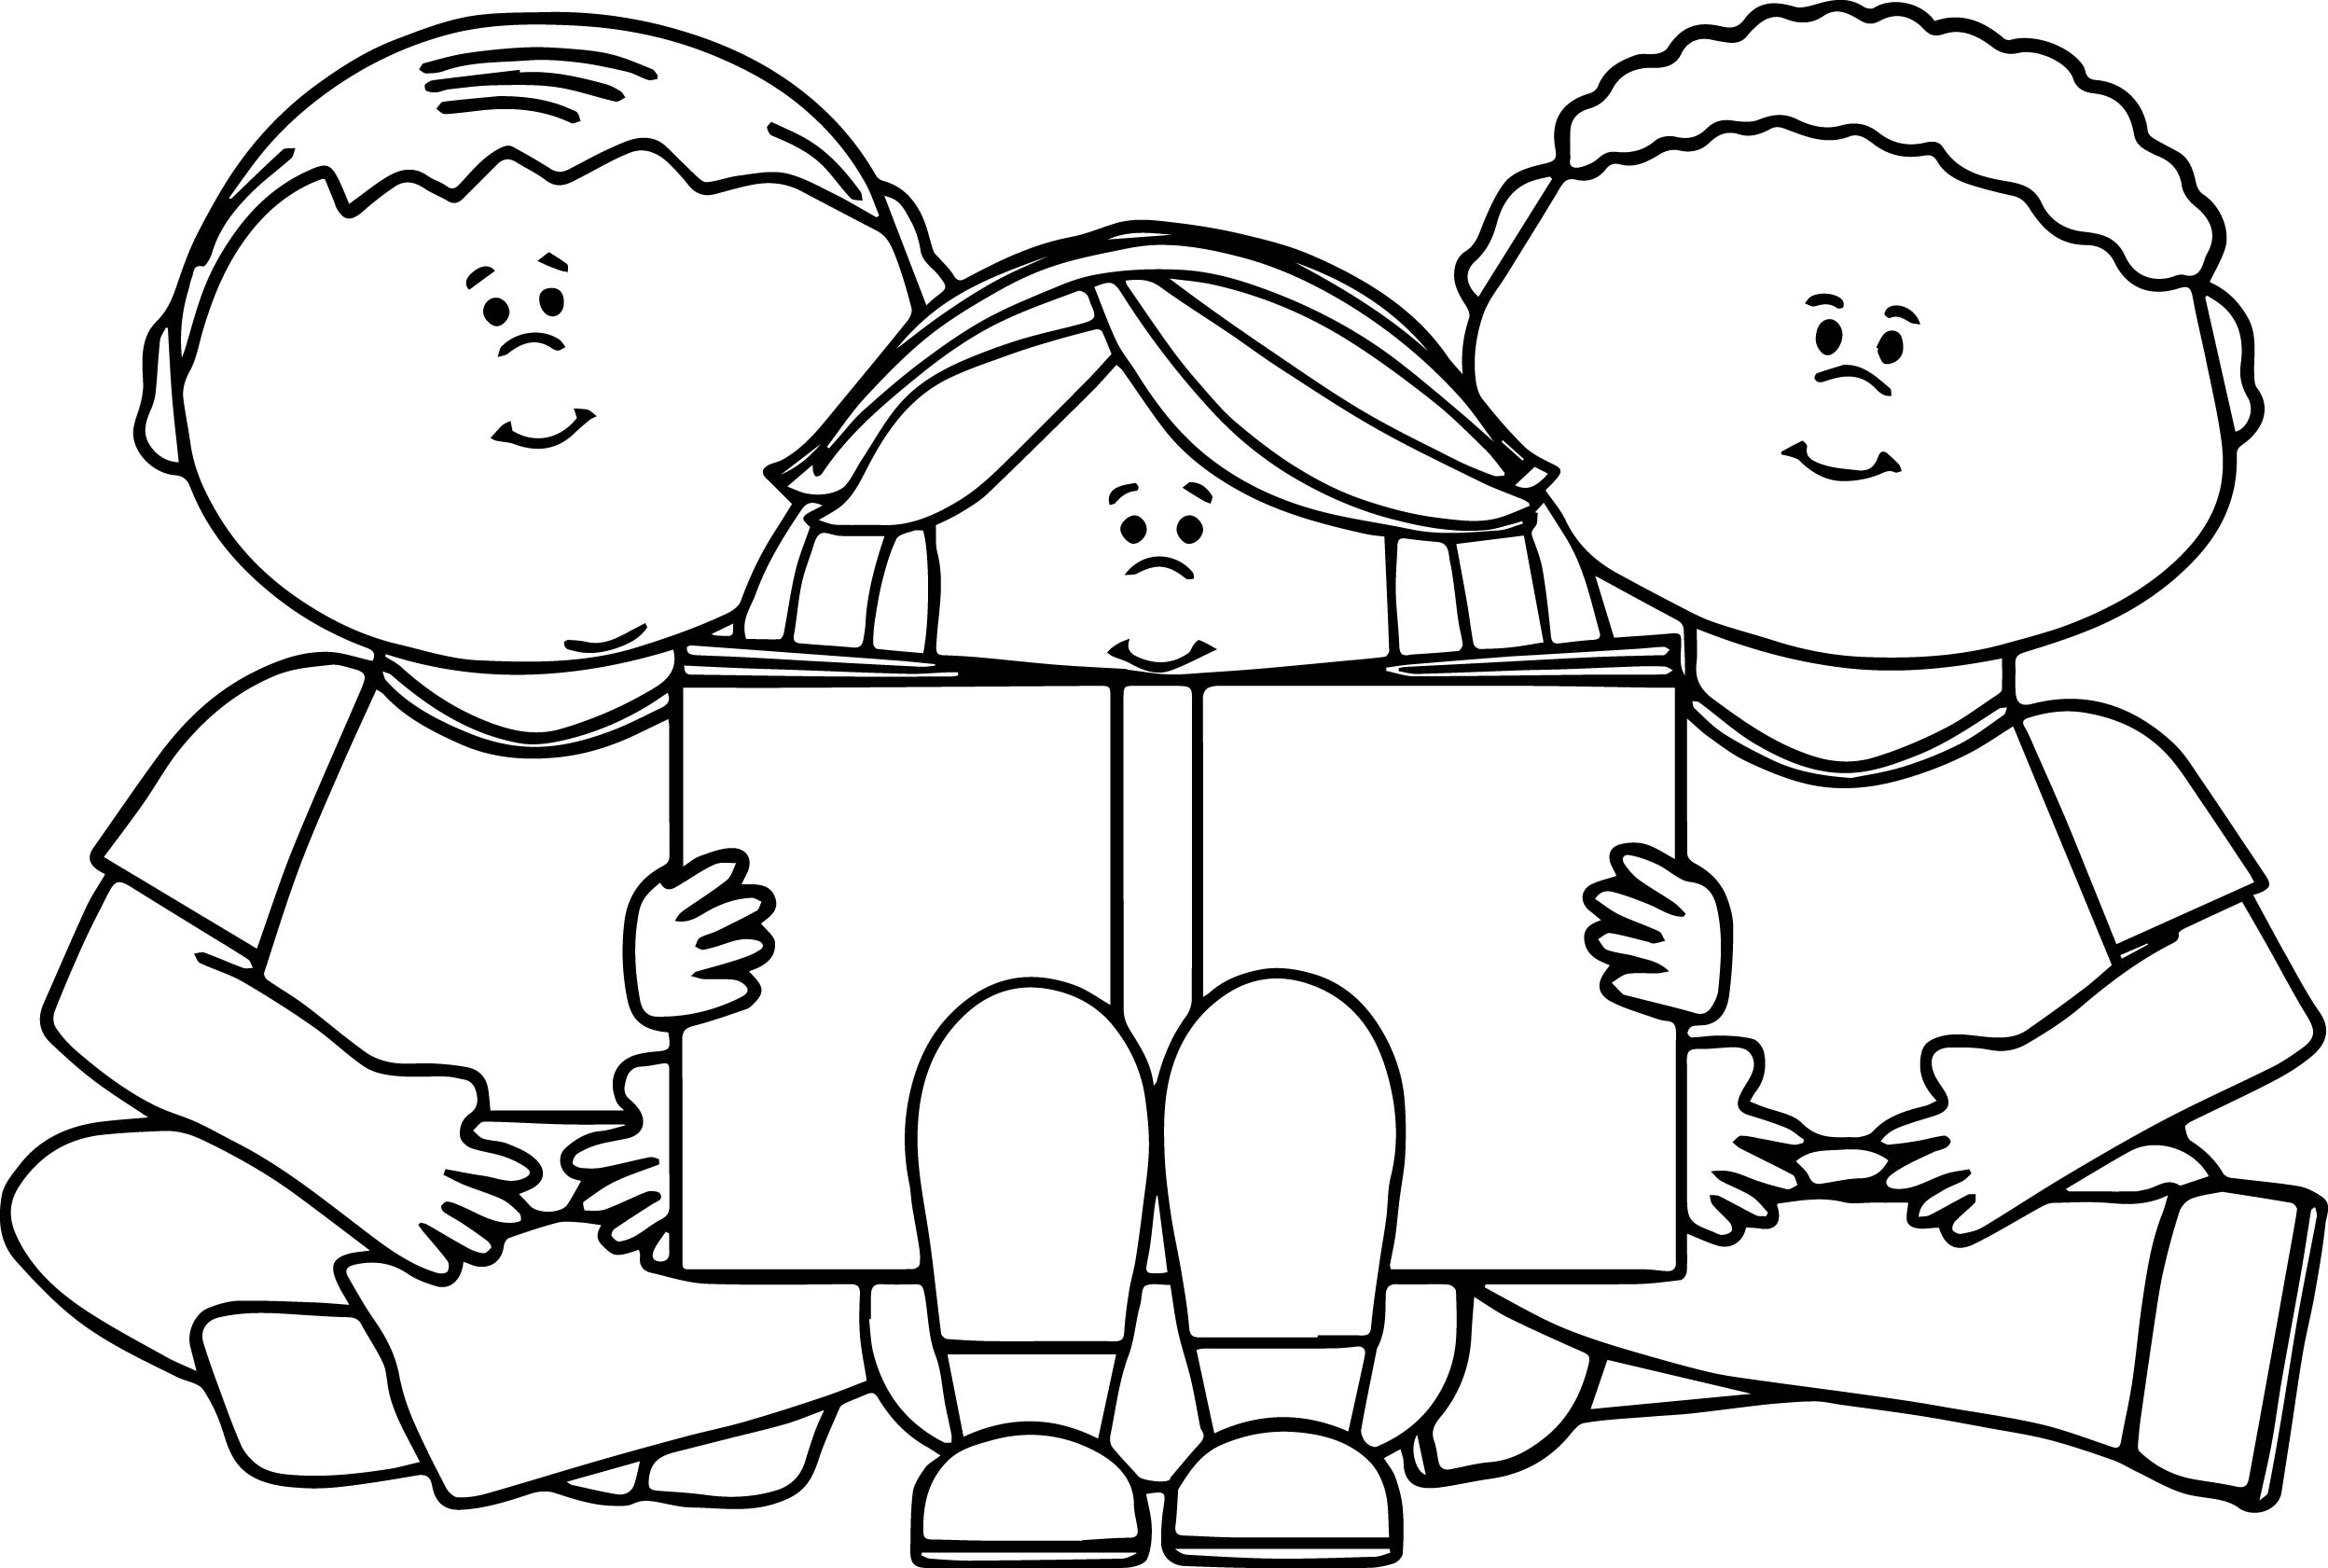 Books Coloring Pages Best Coloring